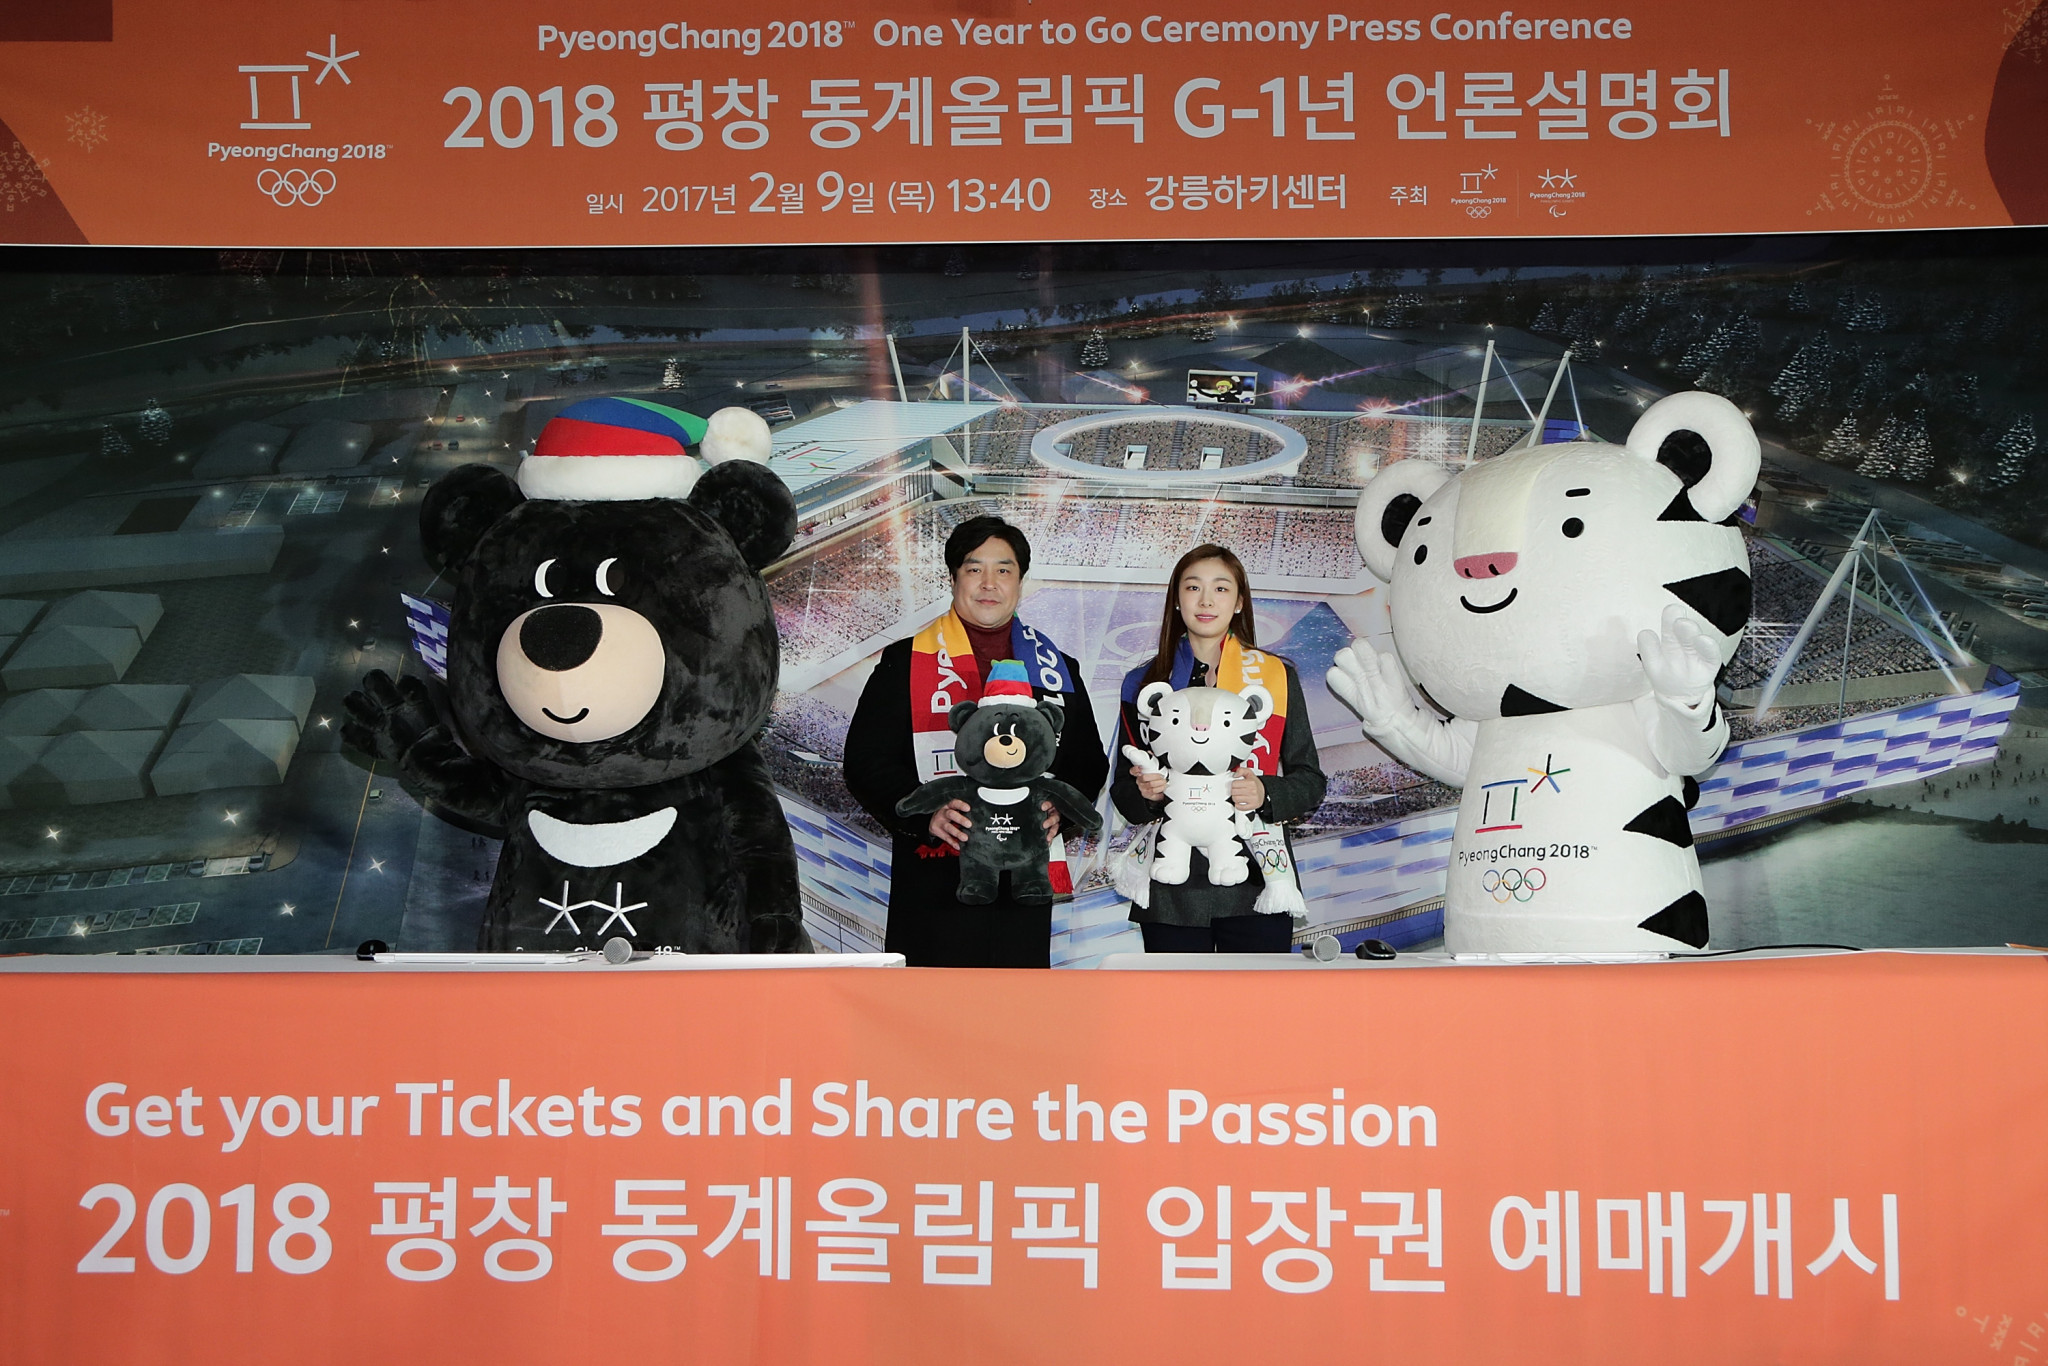 Pyeongchang 2018 Olympic ticket sales rise to 61 per cent